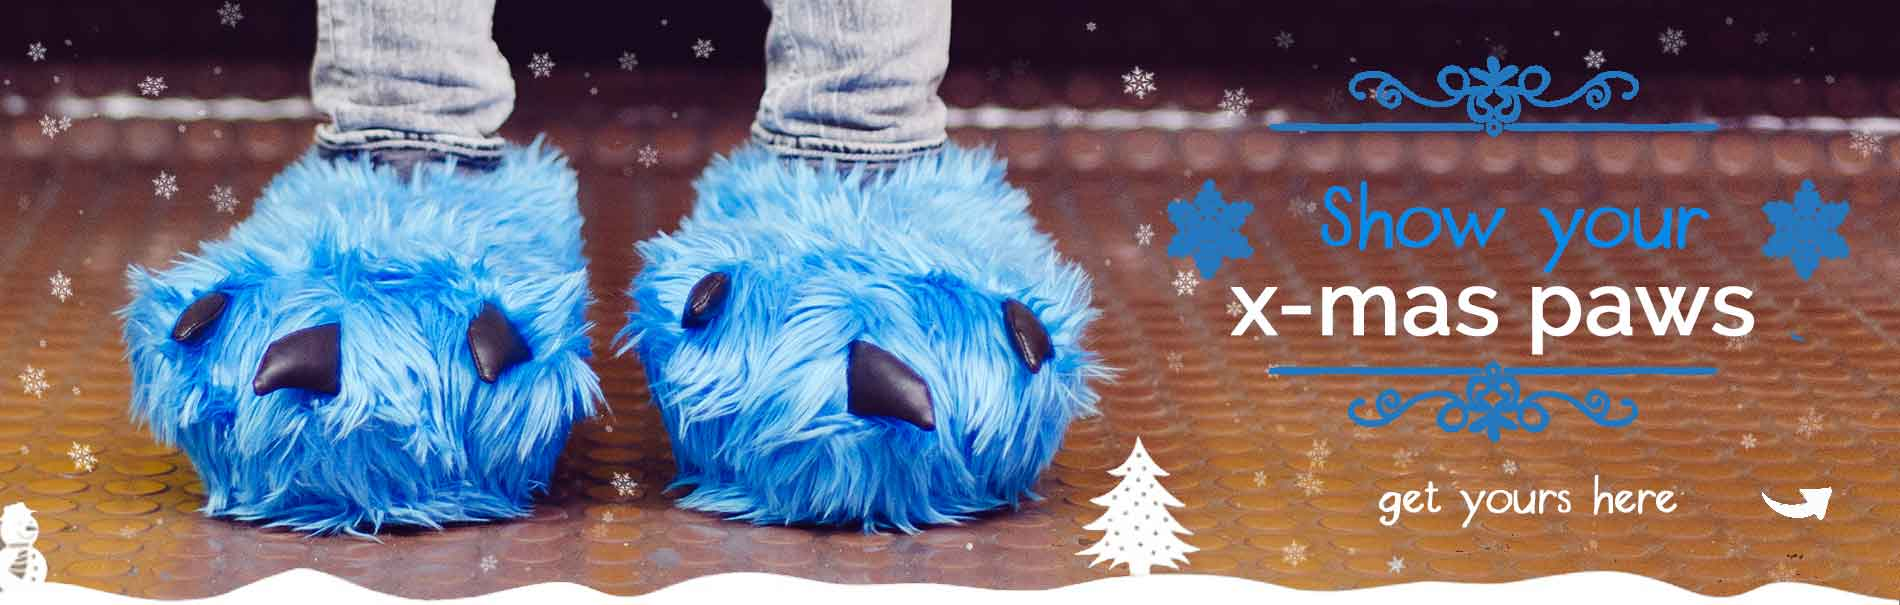 blue paw slippers with claws